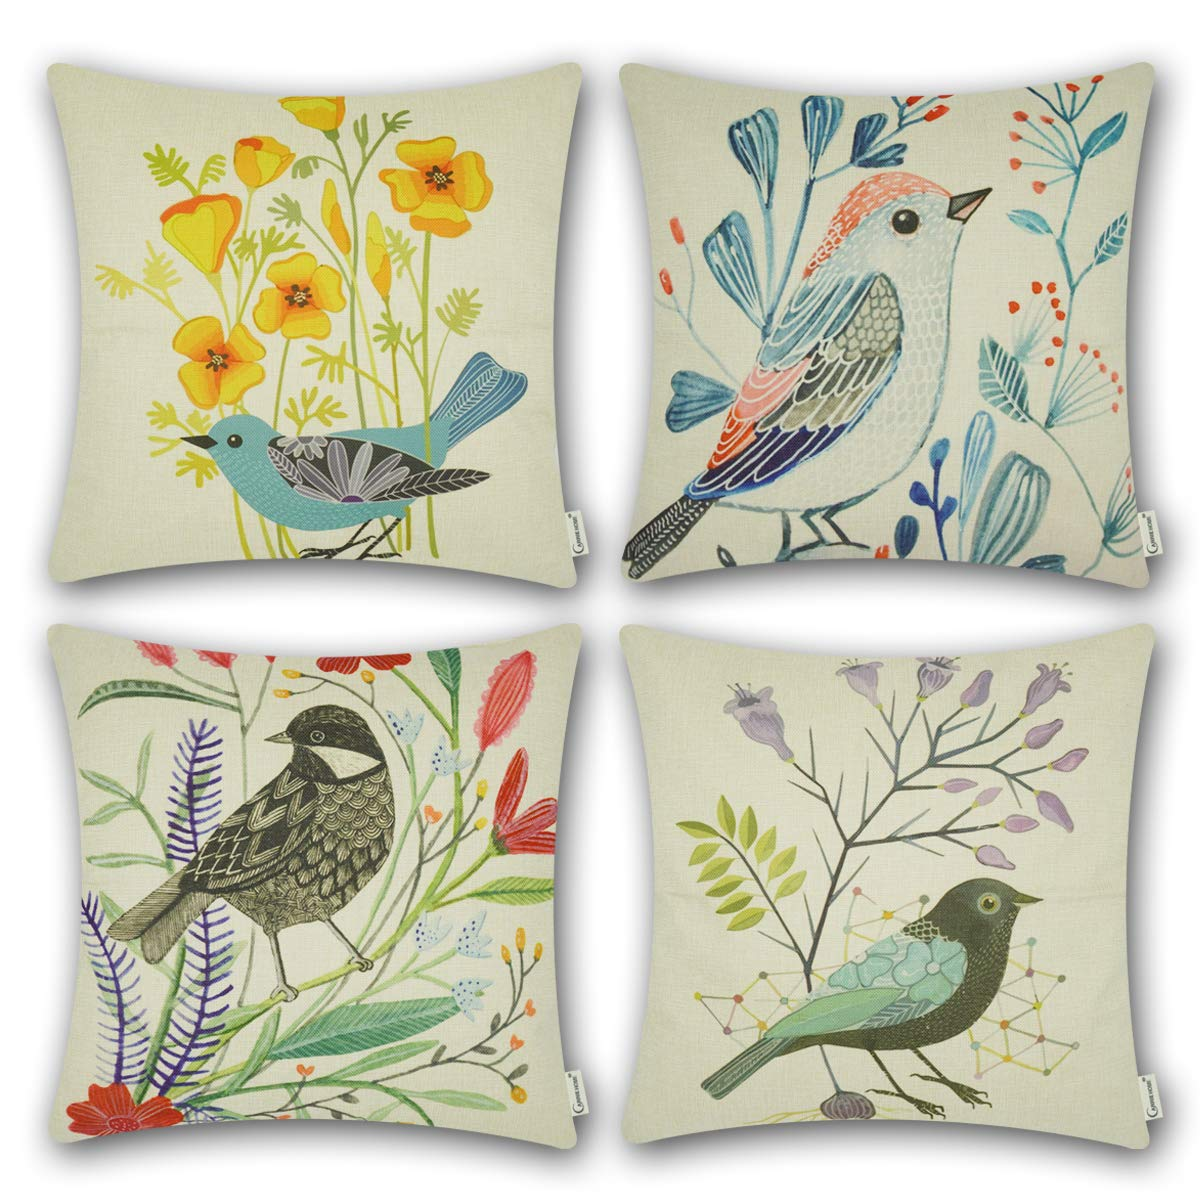 CARRIE HOME Bird Outdoor Throw Pillow Covers 18×18 Farmhouse Decorative Pillow Case Cushion Covers for Patio Furniture, Set of 4